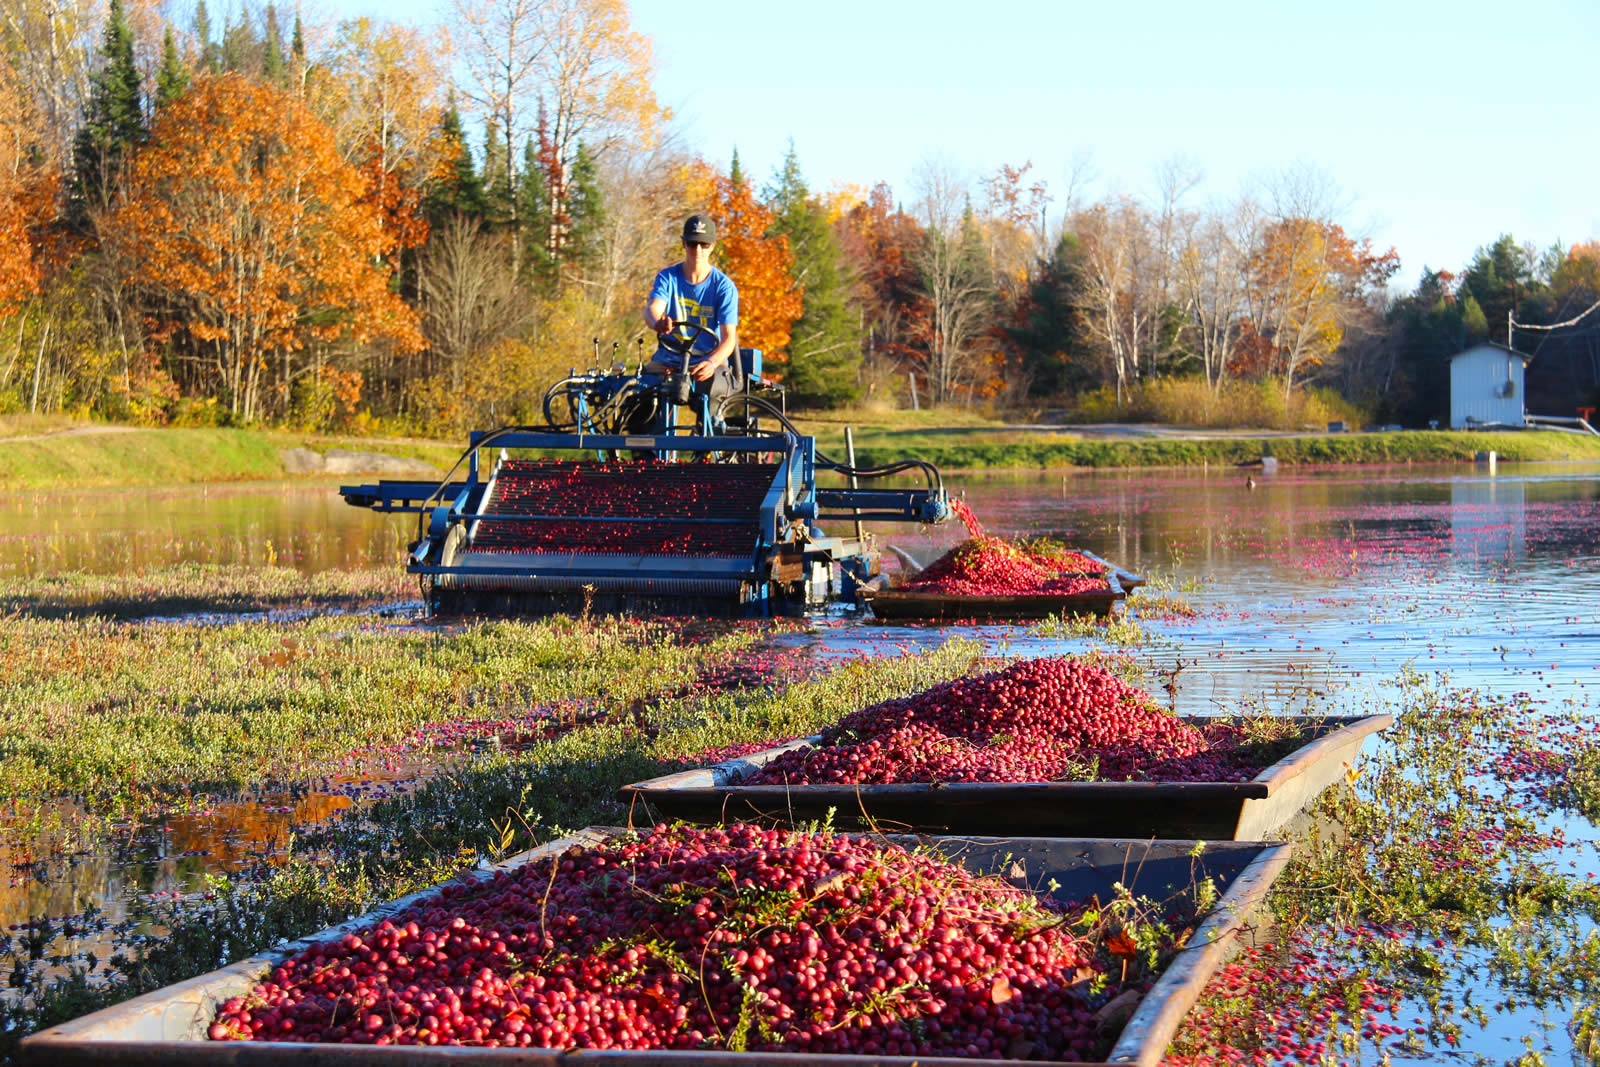 cranberry picker and full cranberry boats in fall